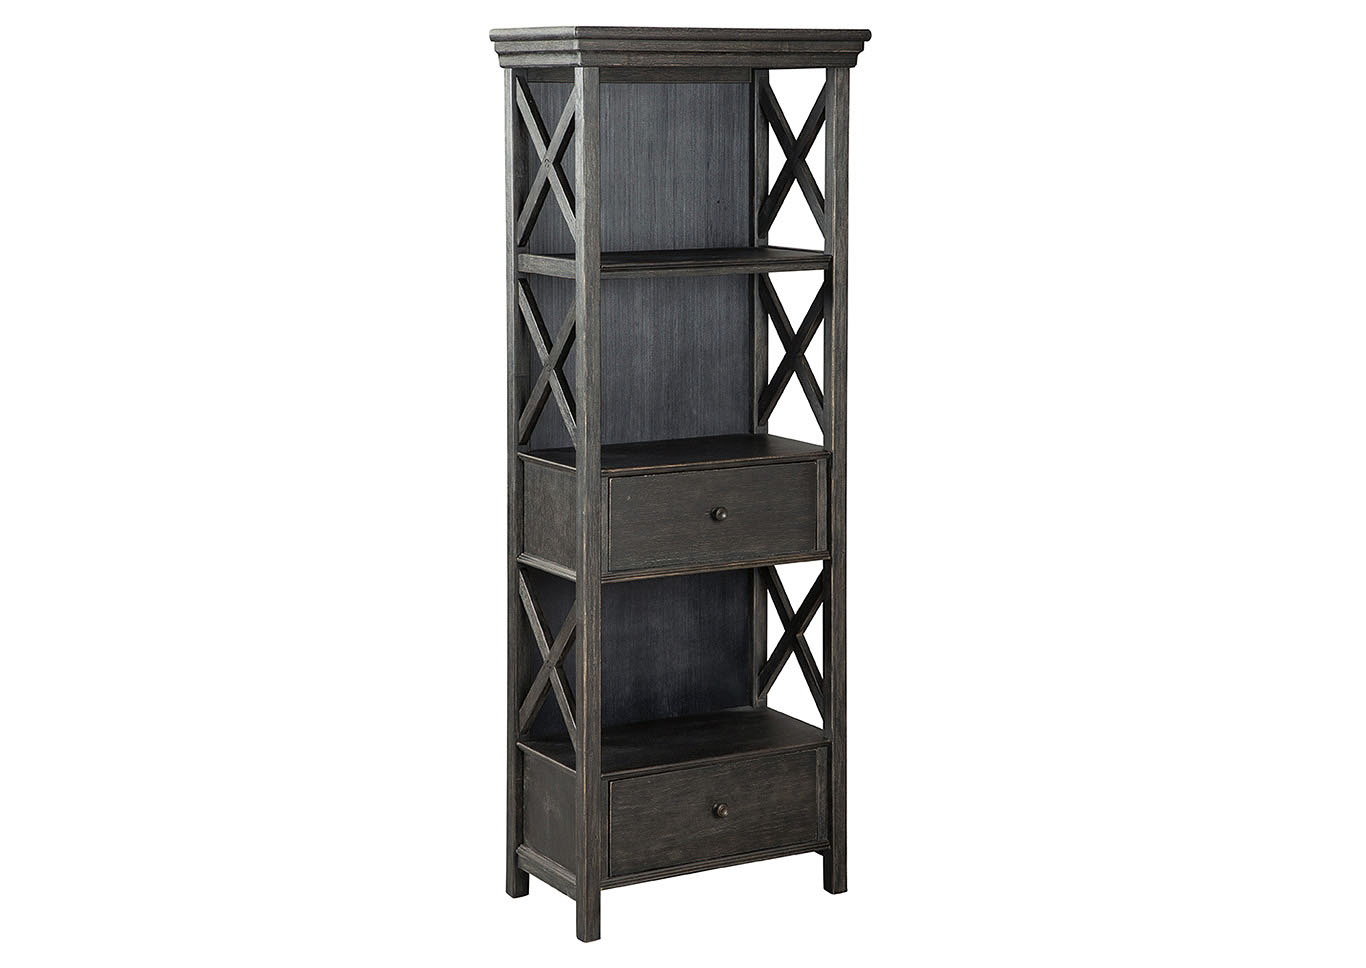 Homelife Furniture Accessories Tyler Creek Black Gray Display Cabinet